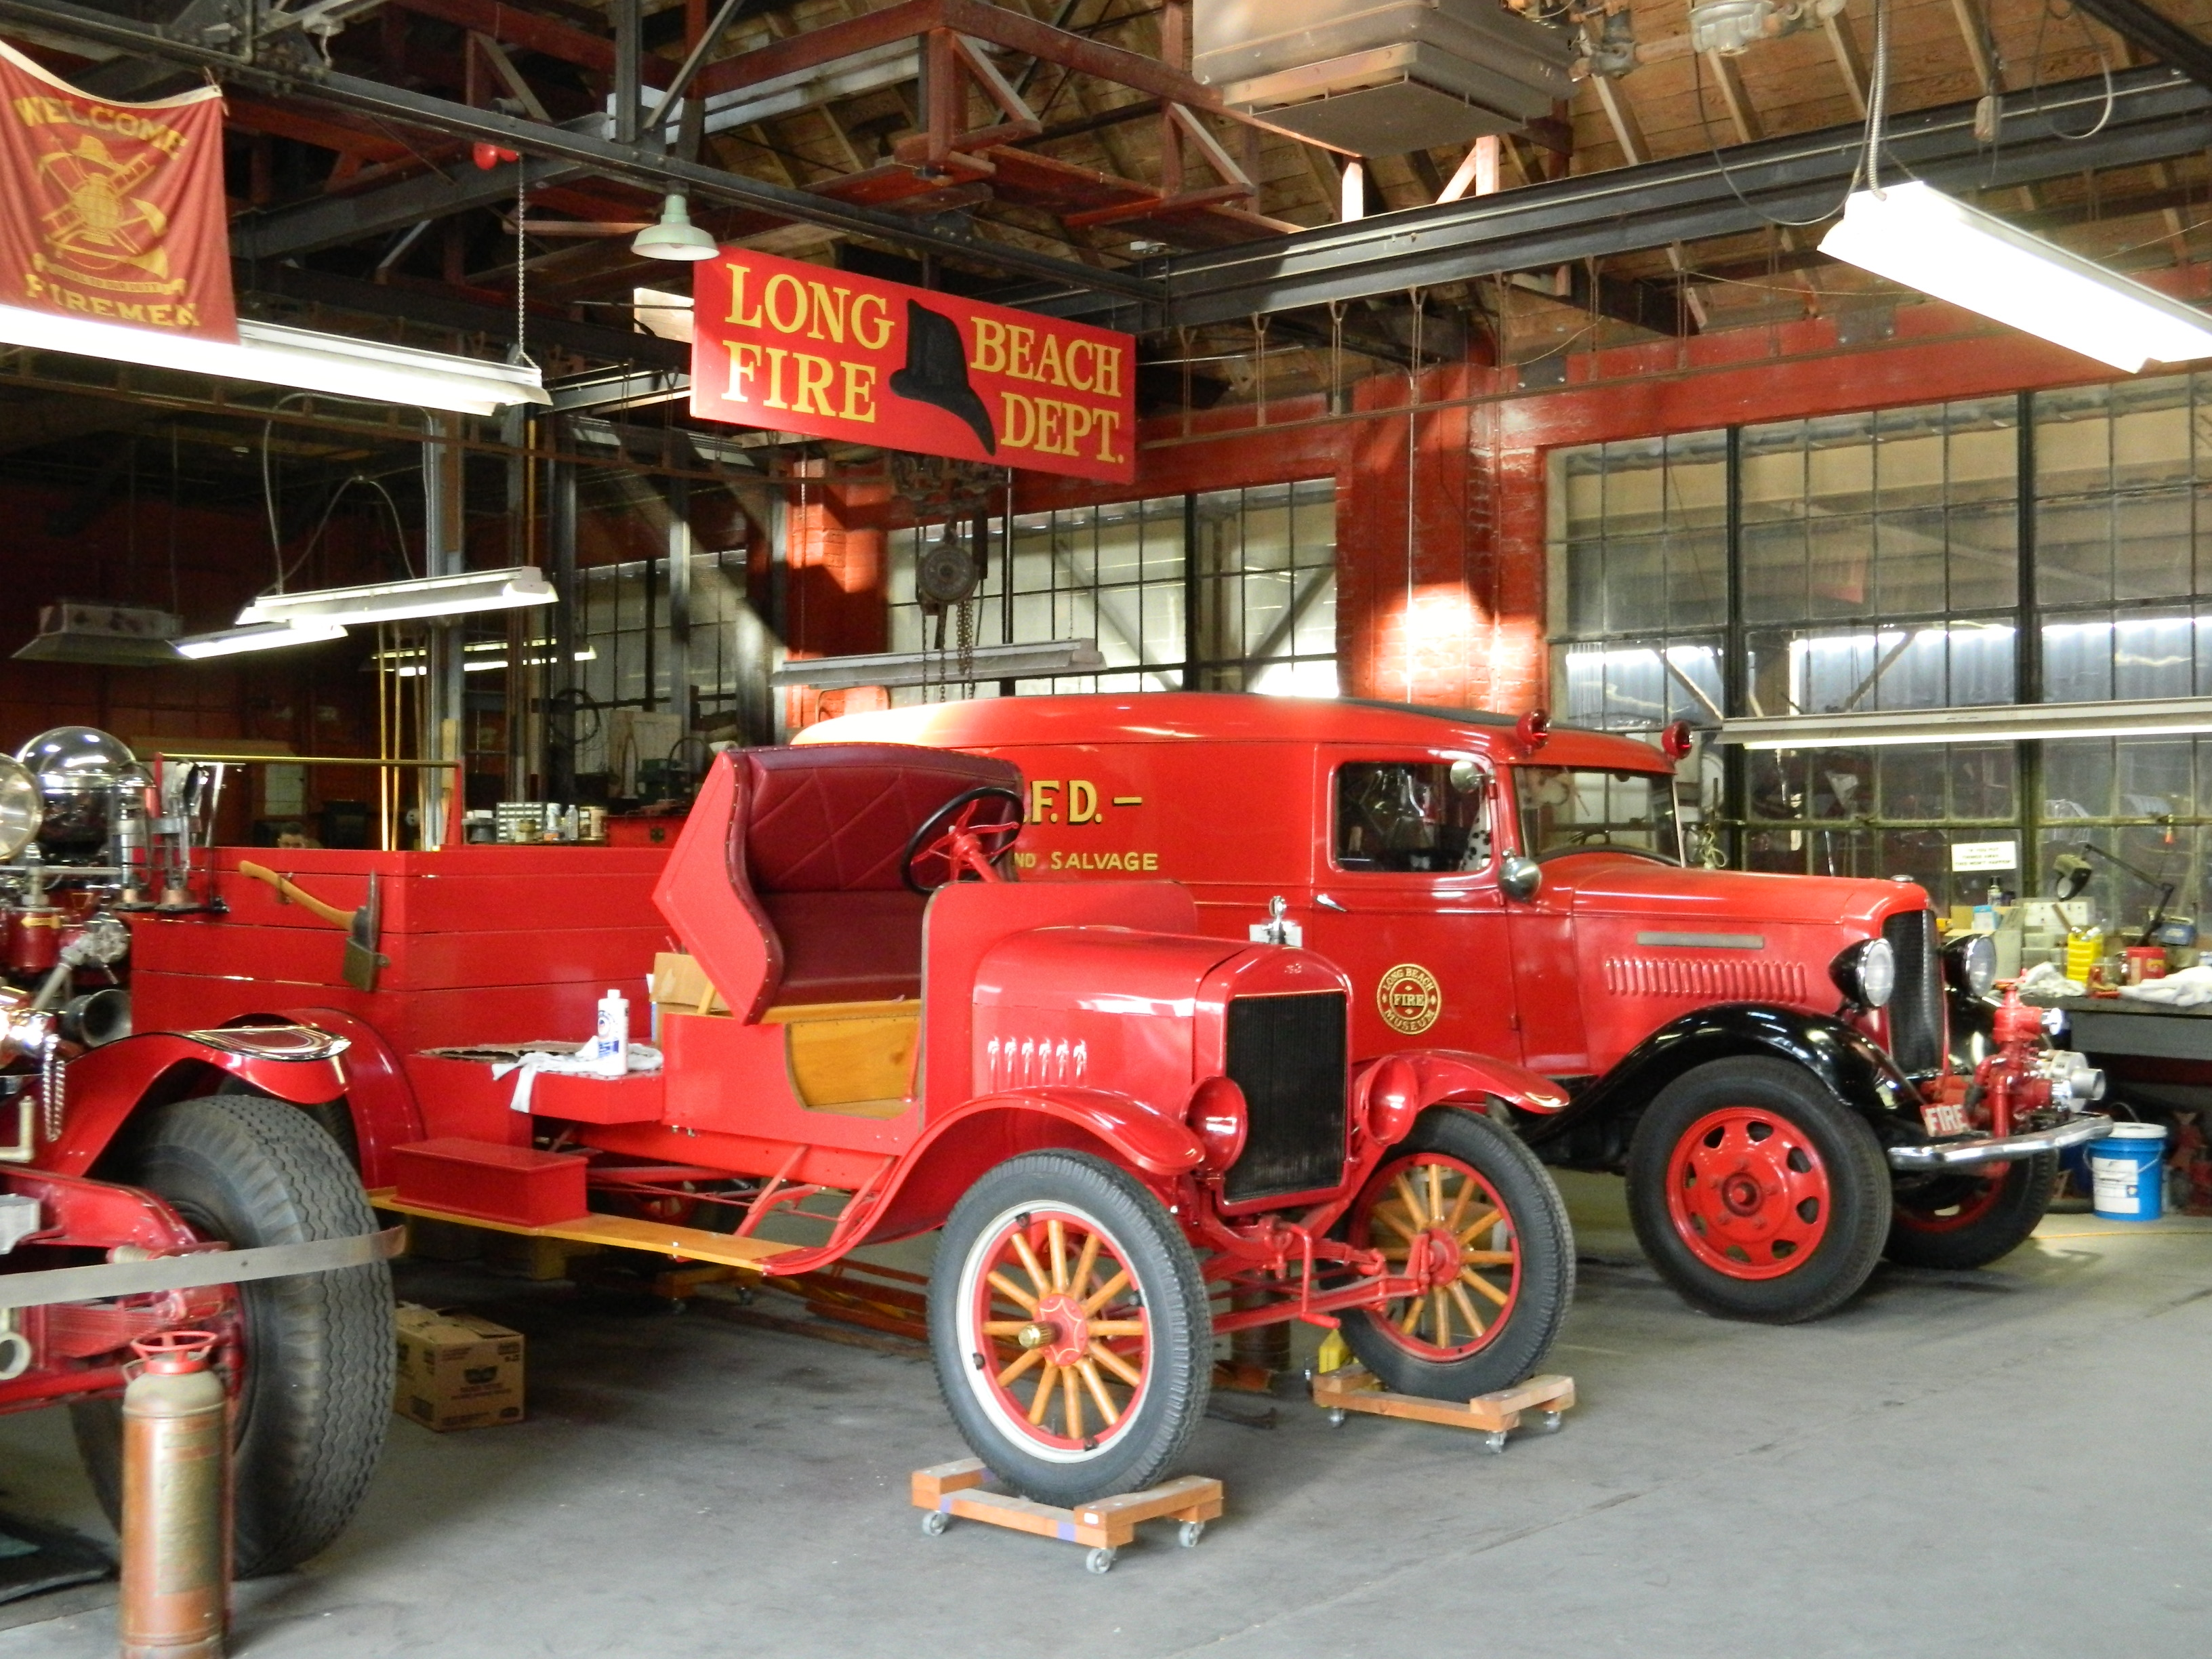 Fire fighting vehicles on display within the museum.